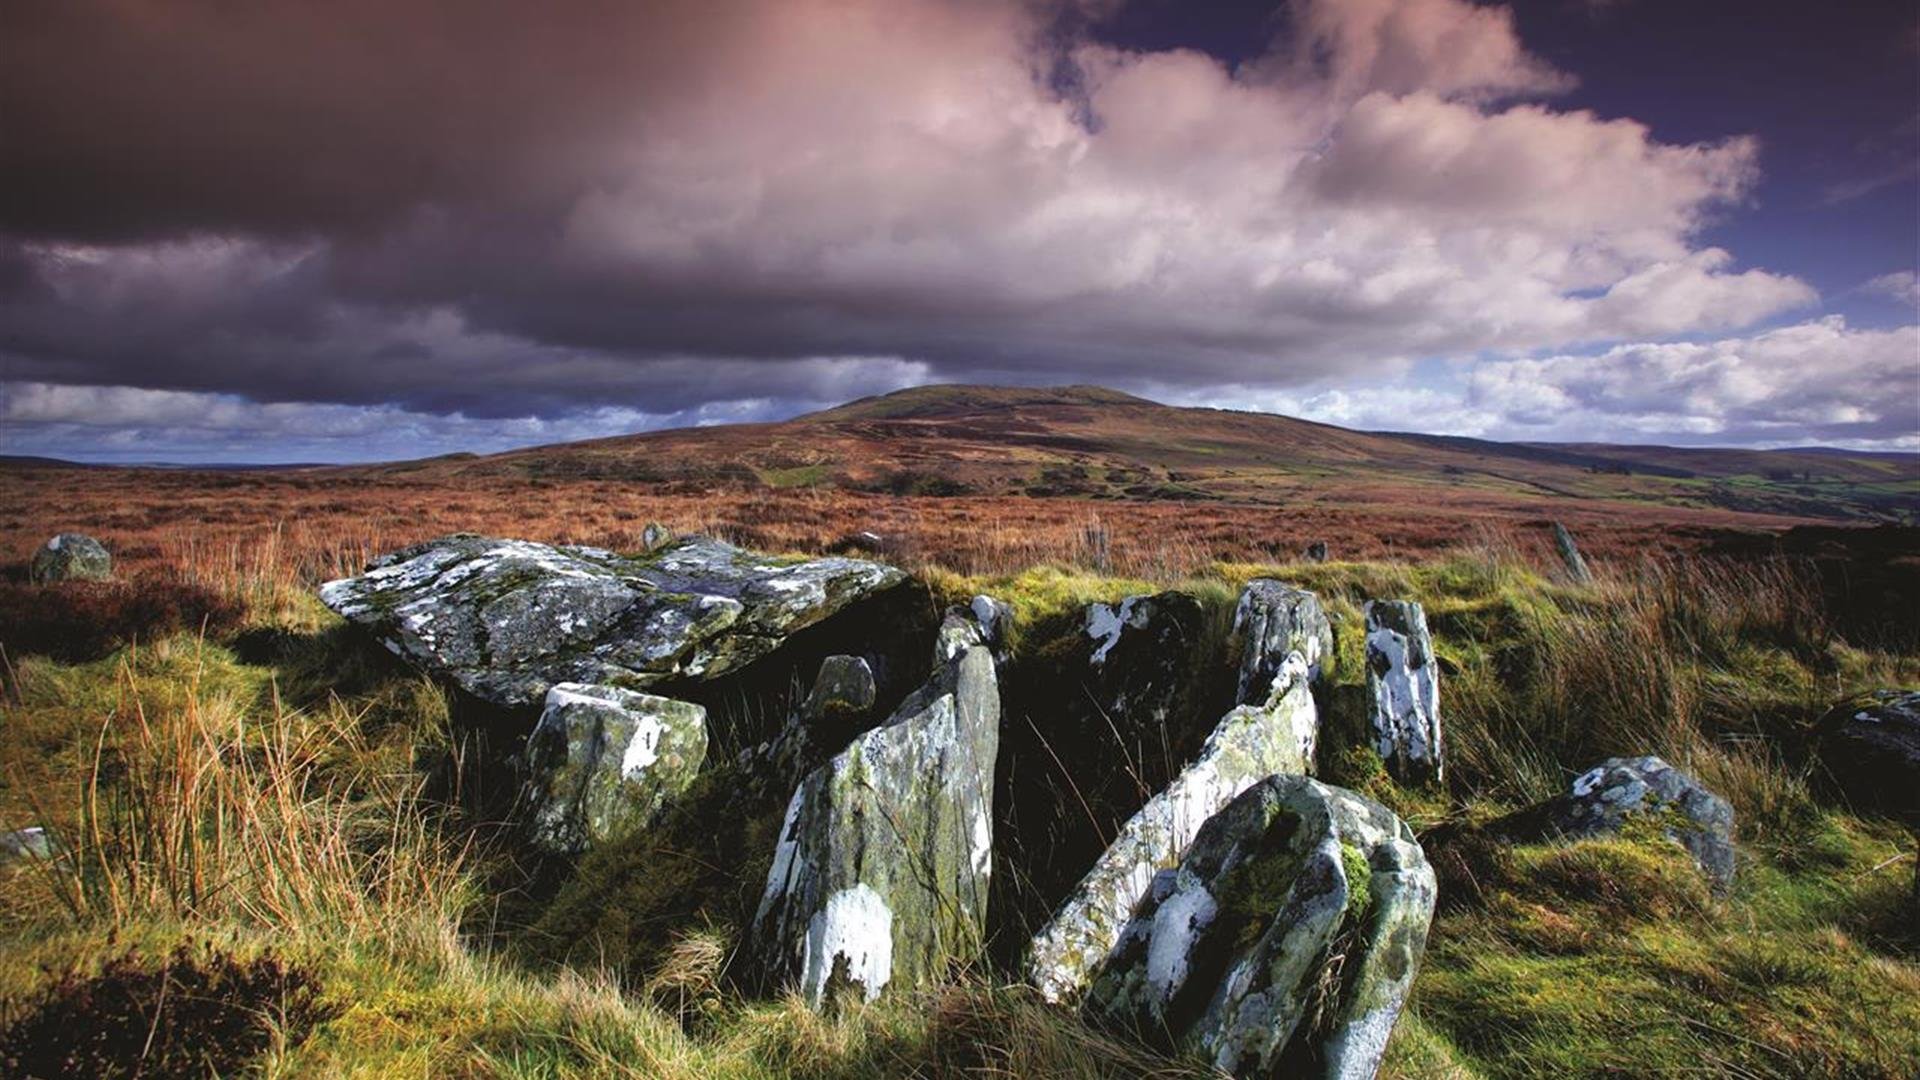 Clogherny Wedge Tomb